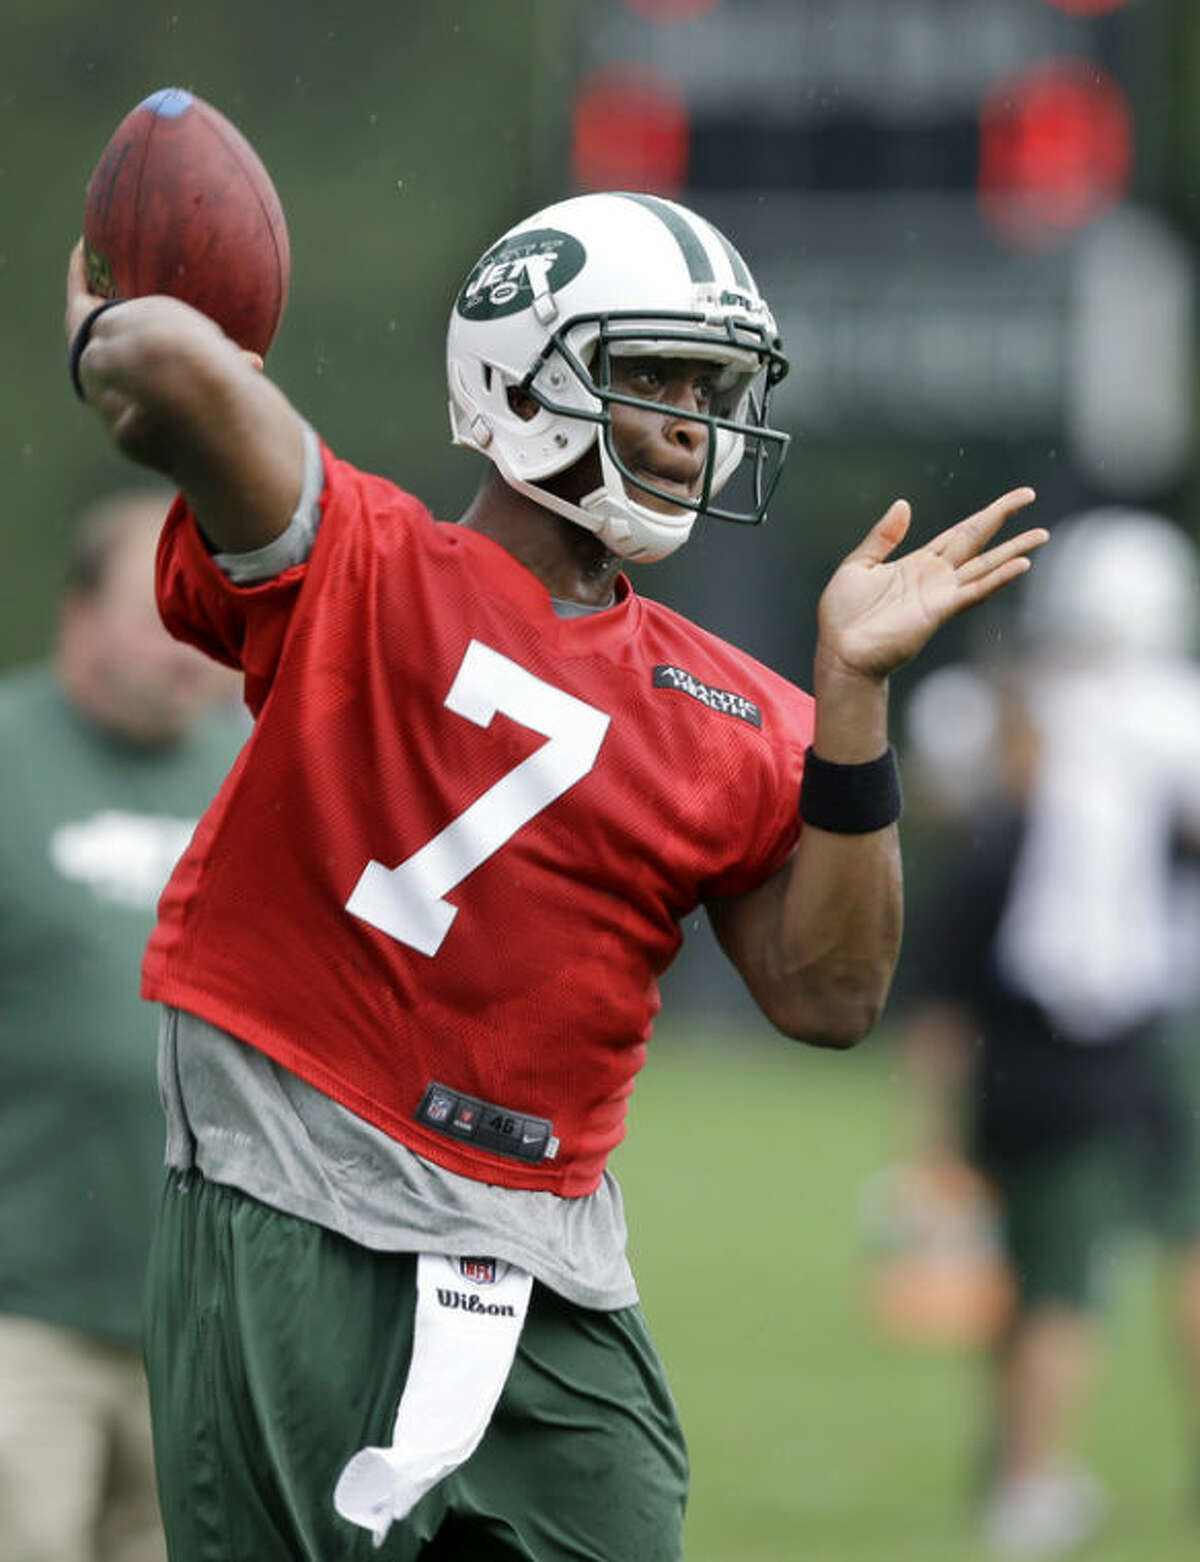 New York Jets quarterback Geno Smith (7) throws a pass during the team's NFL football practice in Florham Park, N.J., Monday, Sept. 2, 2013. (AP Photo/Mel Evans)